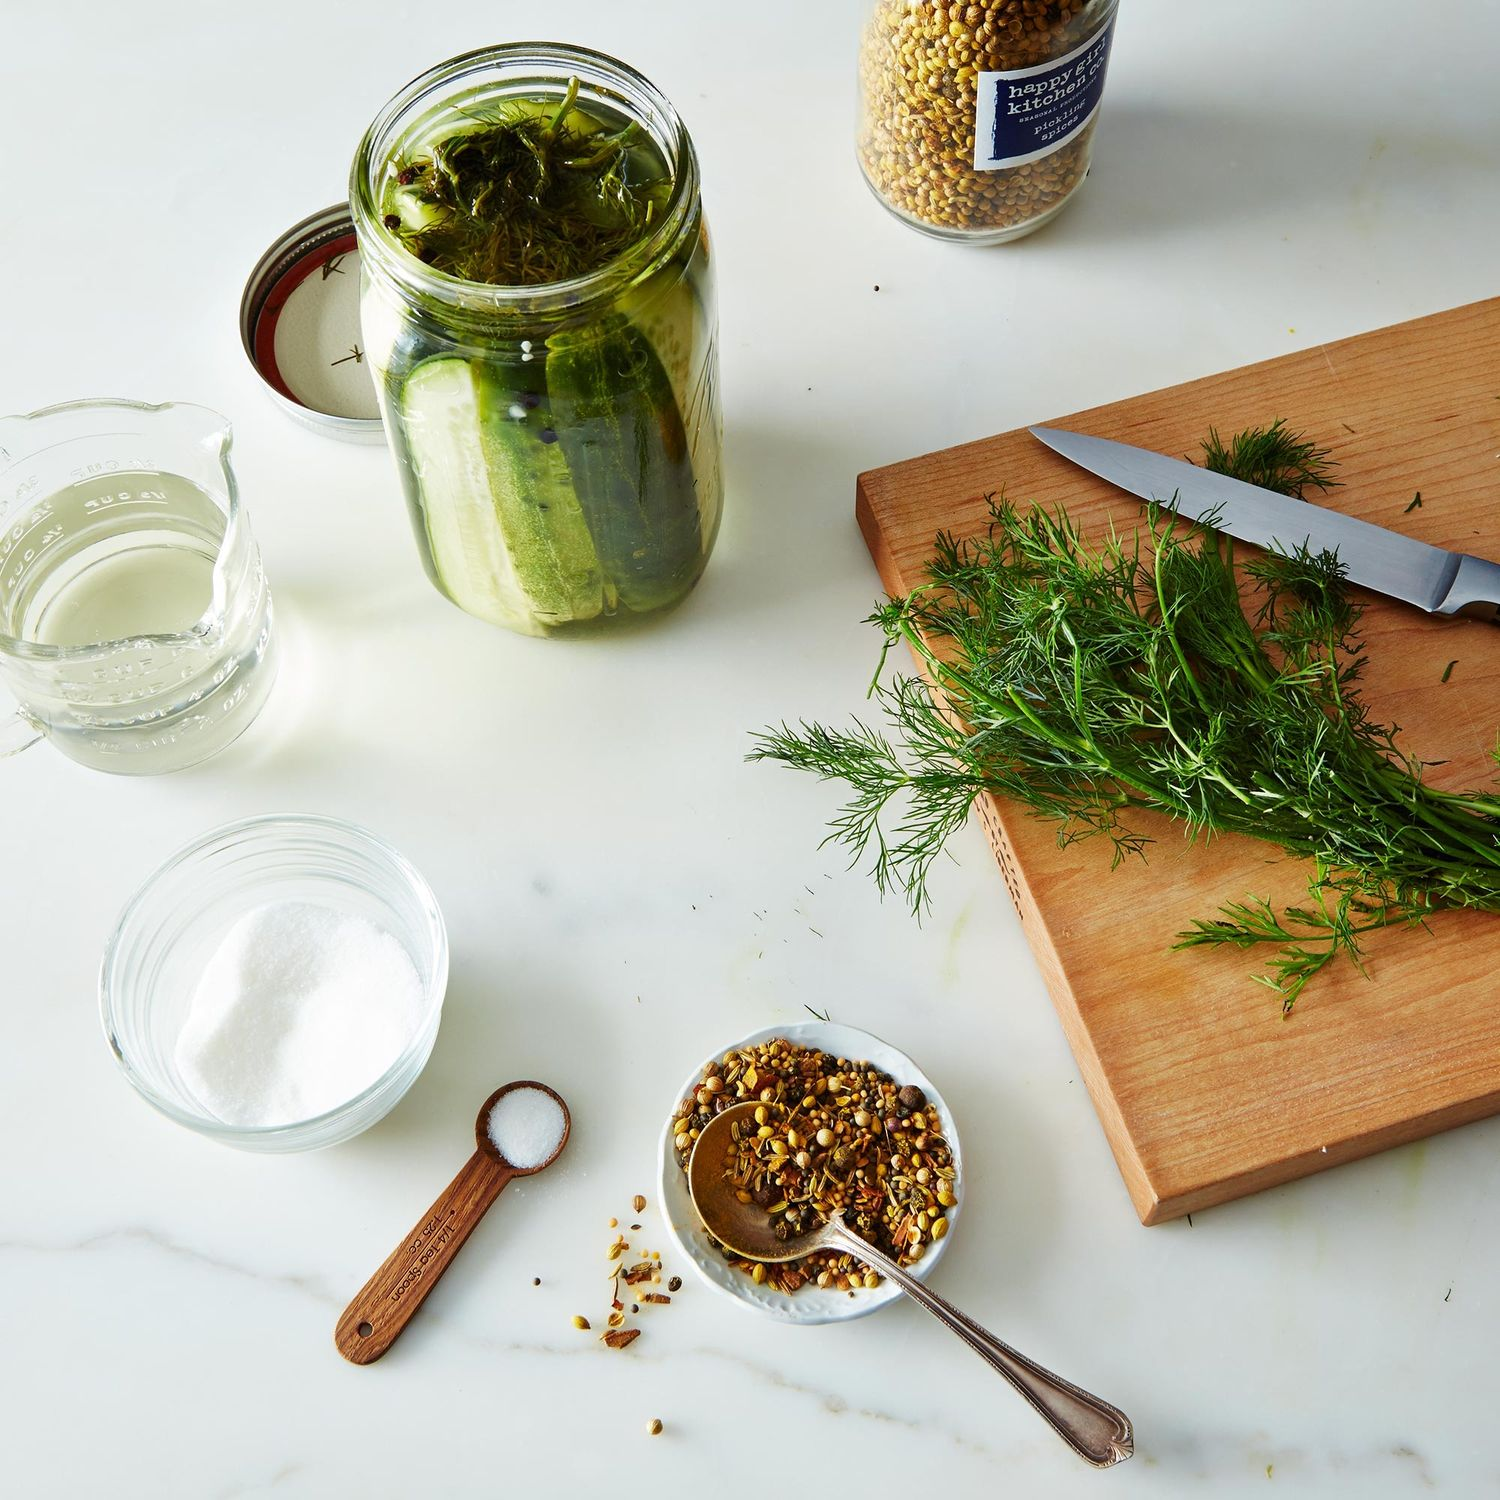 Pickling Spice On Food52